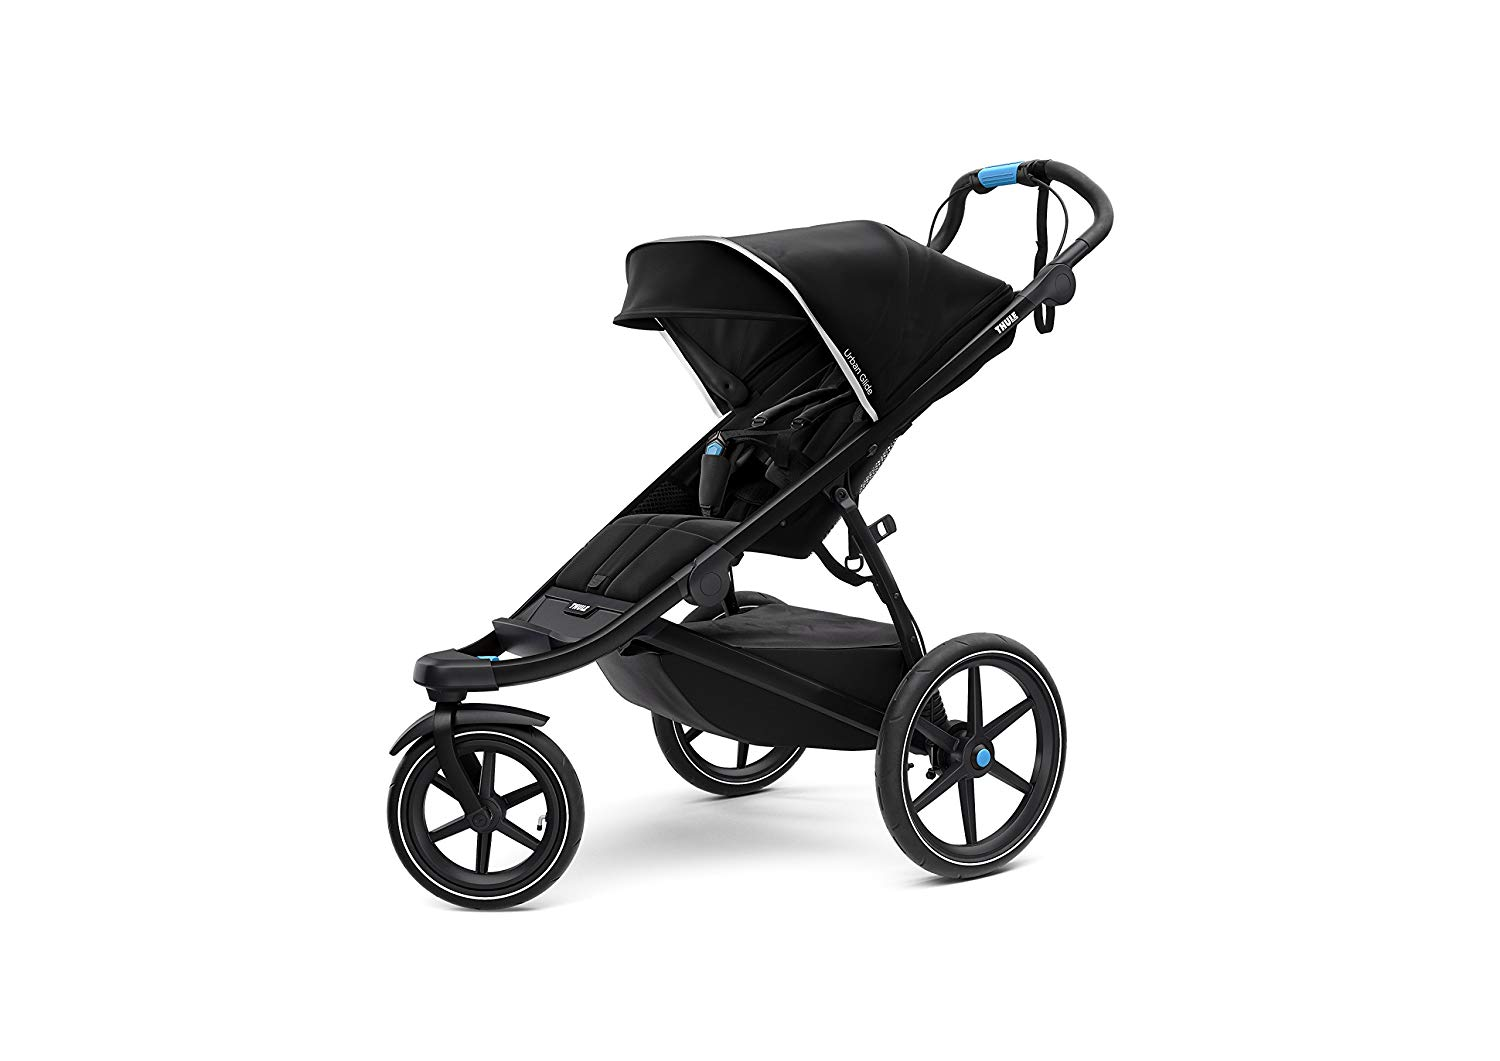 Car Seat Stroller Travel System Reviews Best All Terrain Stroller 2019 Reviews Buyer S Guide